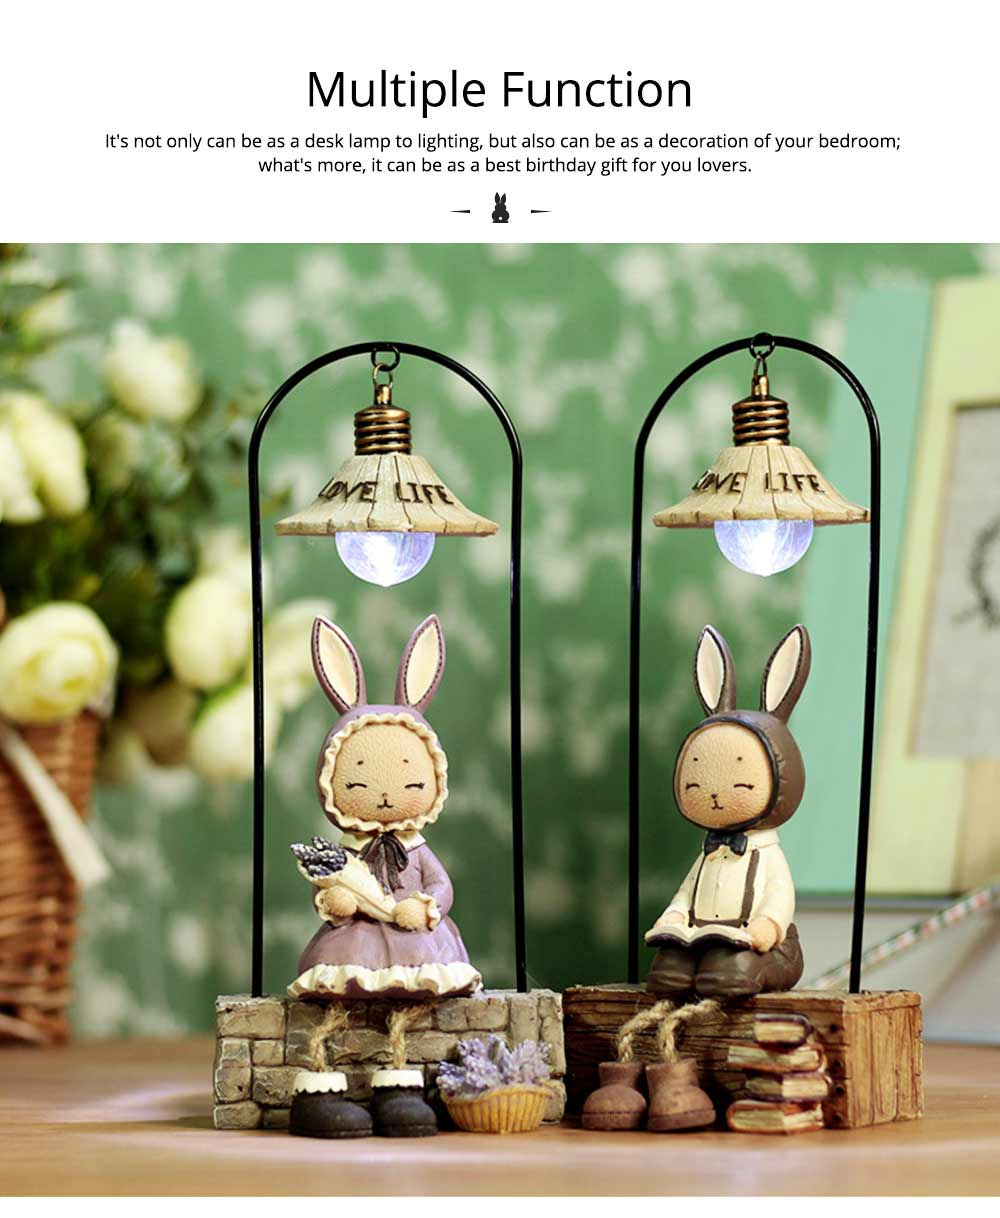 Creative Jenny Rabbit Toy Night Light, Decorative Table Lamp Birthday Gifts for Kids Baby Girls Boys 10